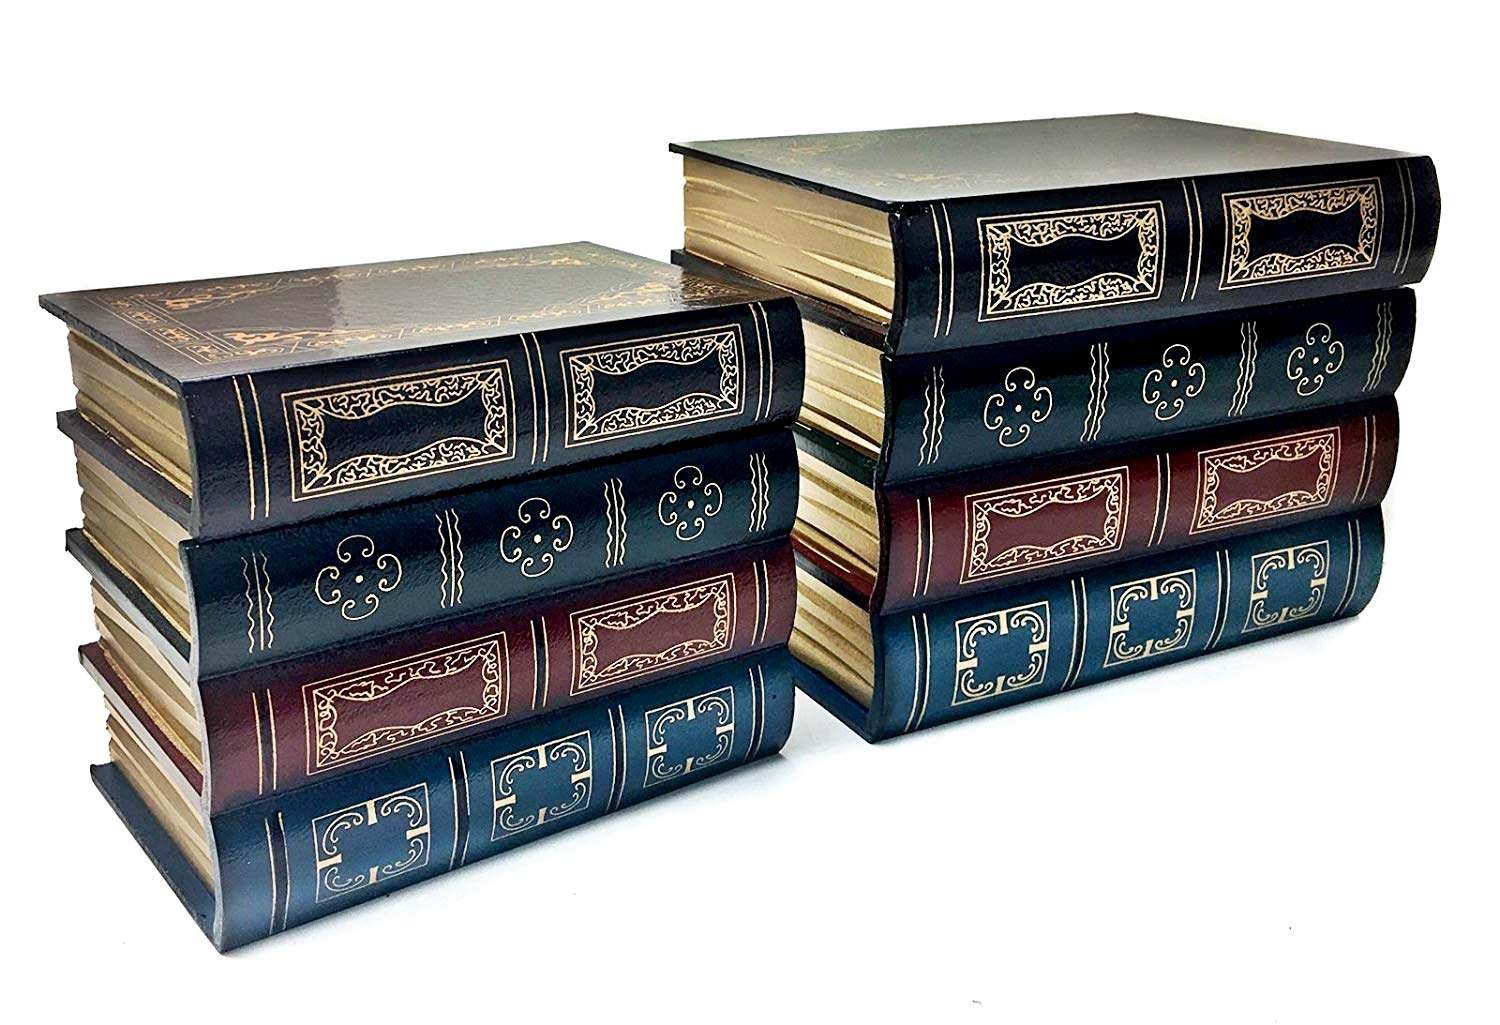 Bellaa 25419 Book Box Bookends w/Hidden Storage 2 pcs Set Library by Bellaa (Image #1)